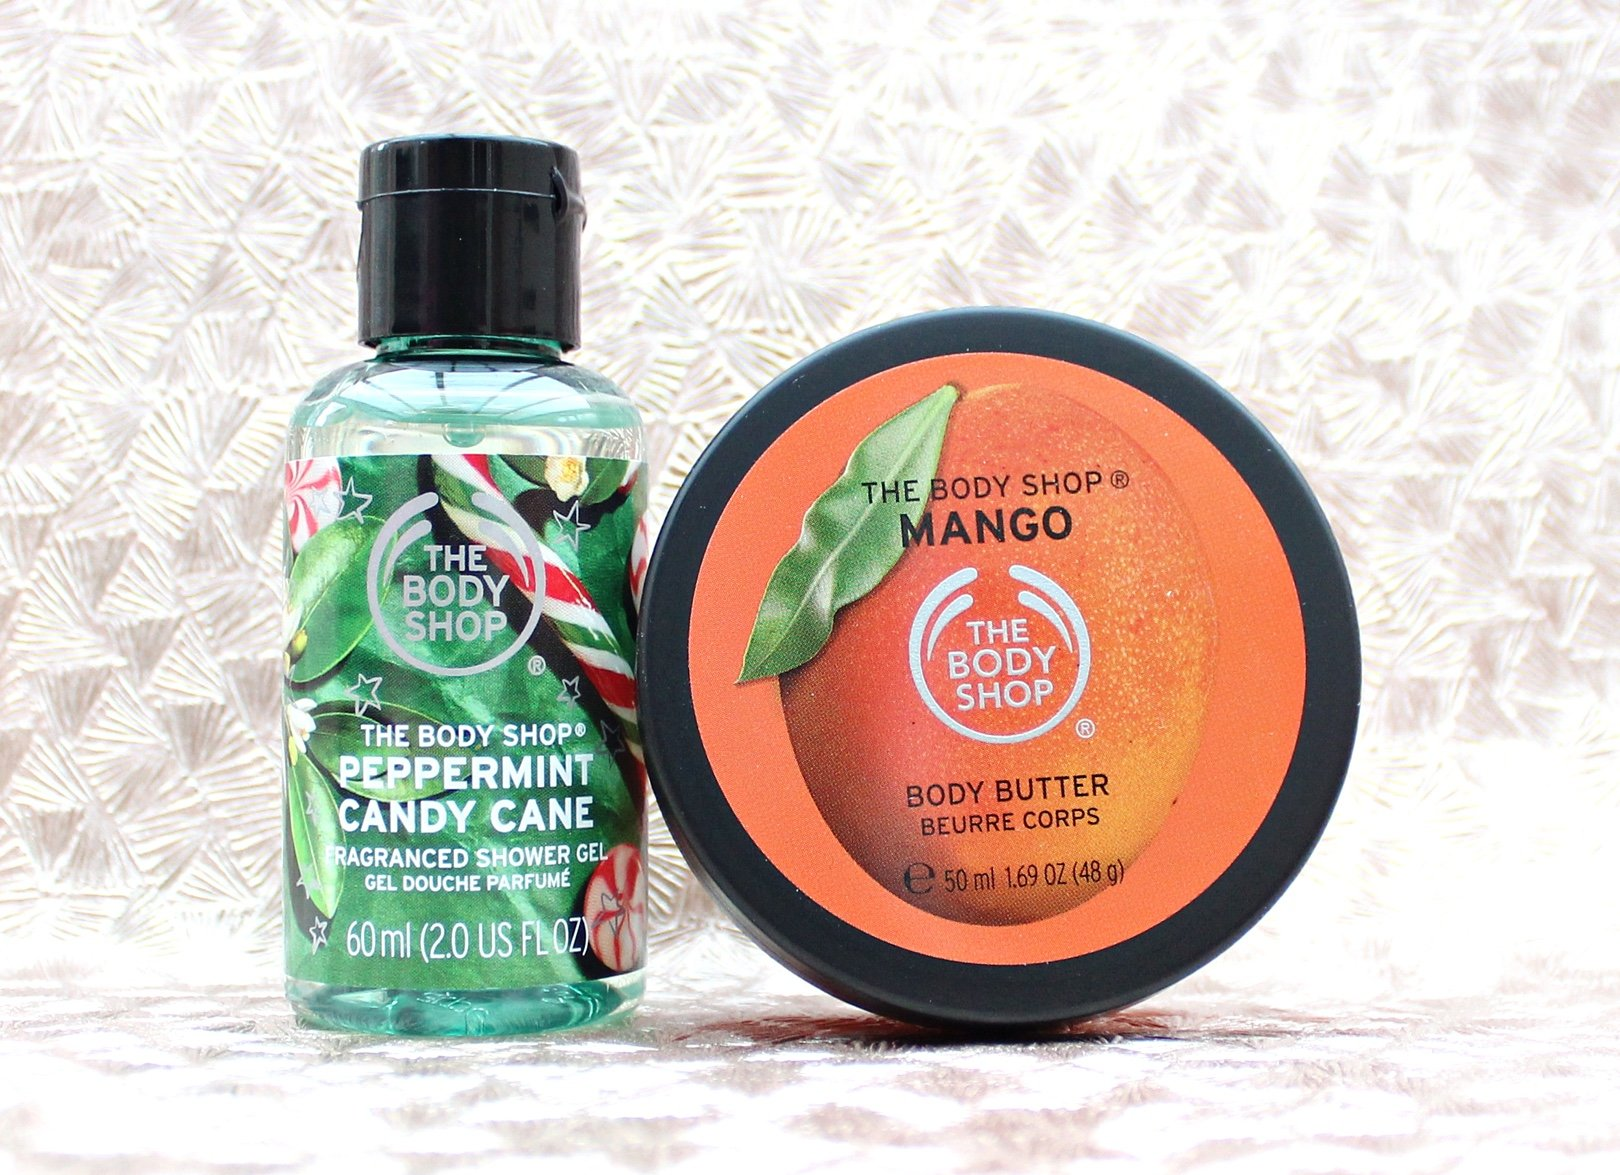 The body shop peppermint candy cane mango body butter